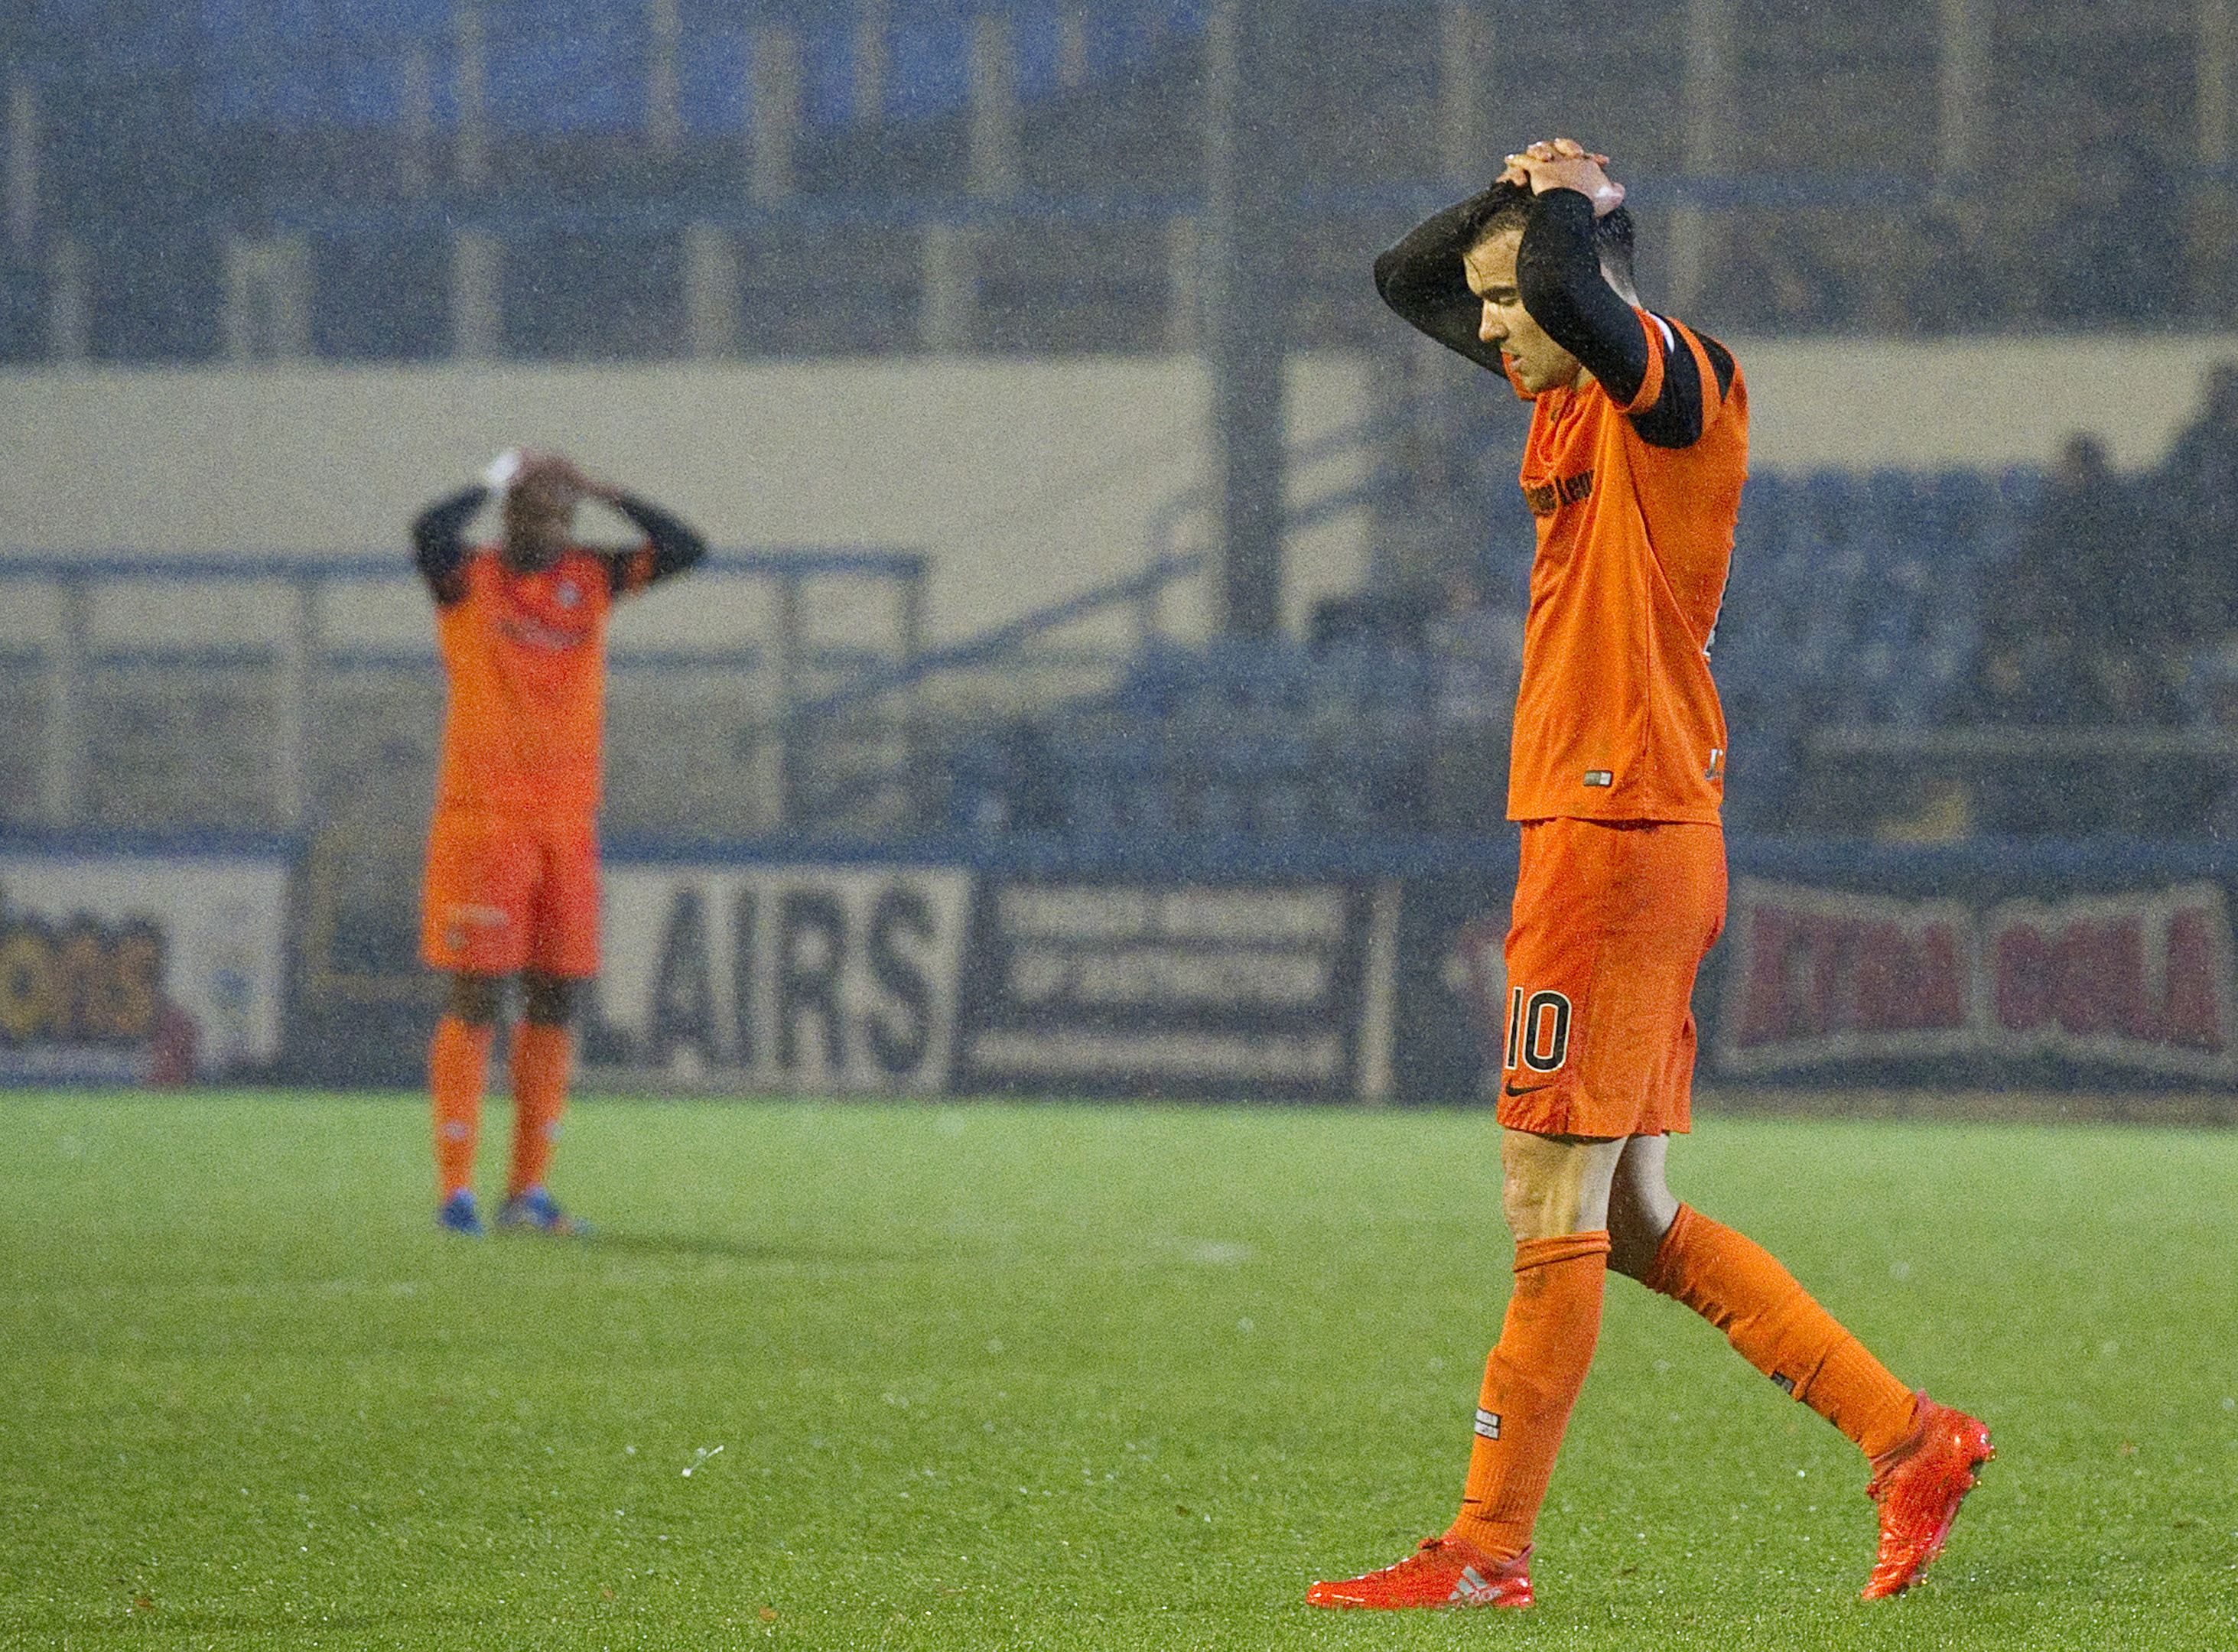 Dundee United's Scott Fraser and William Edjenguele  can't hide their disappointment at full time